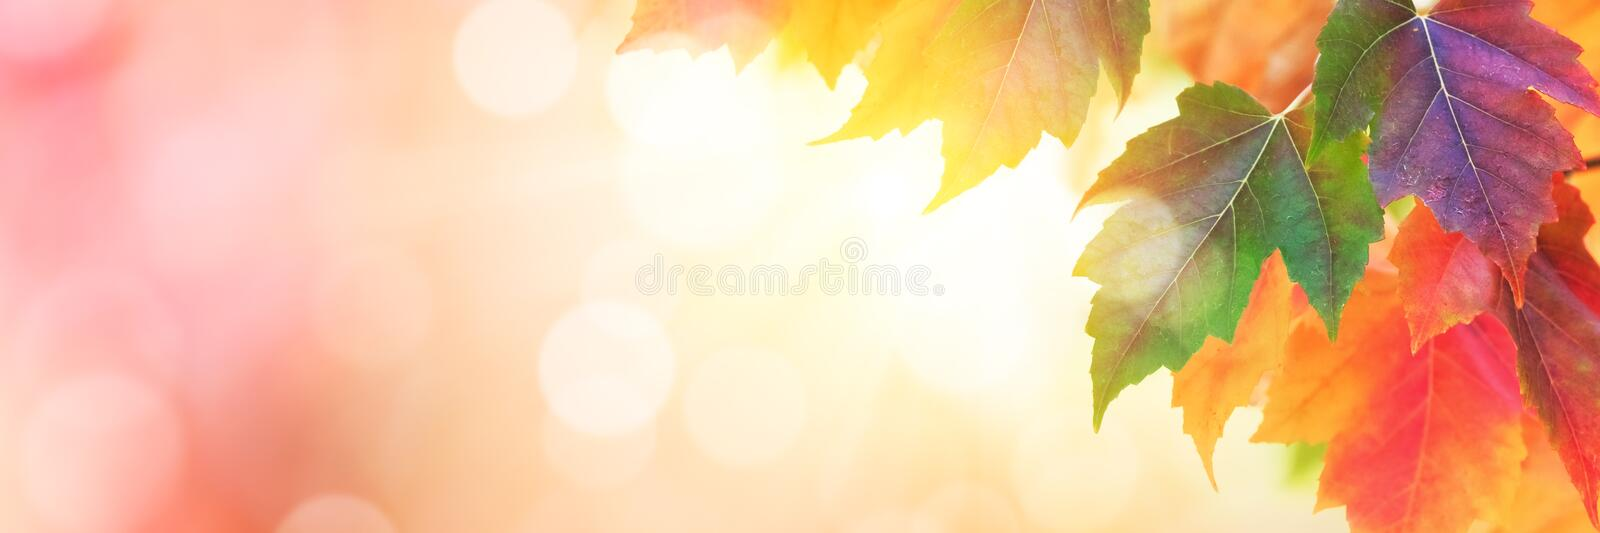 Colorful autumn leaves background. Autumn background with multi colored leaves stock images